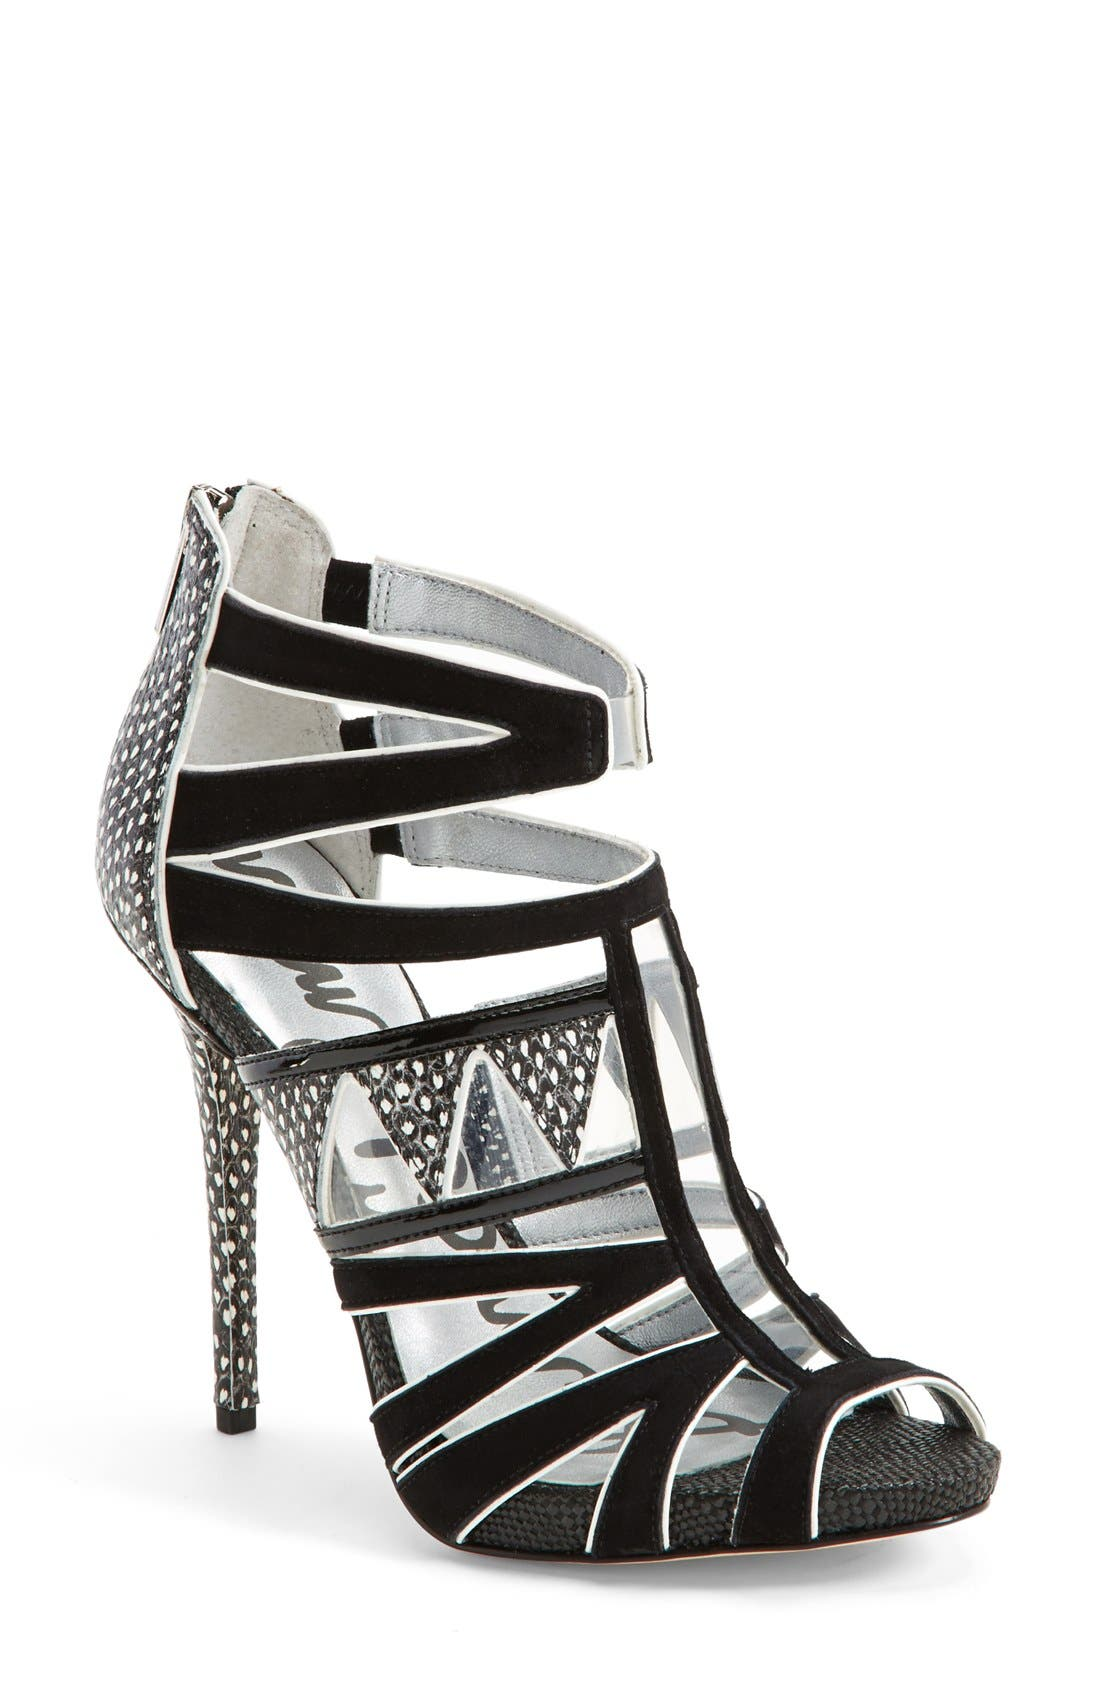 Alternate Image 1 Selected - Sam Edelman 'Jazz' Snake Embossed Sandal (Women)